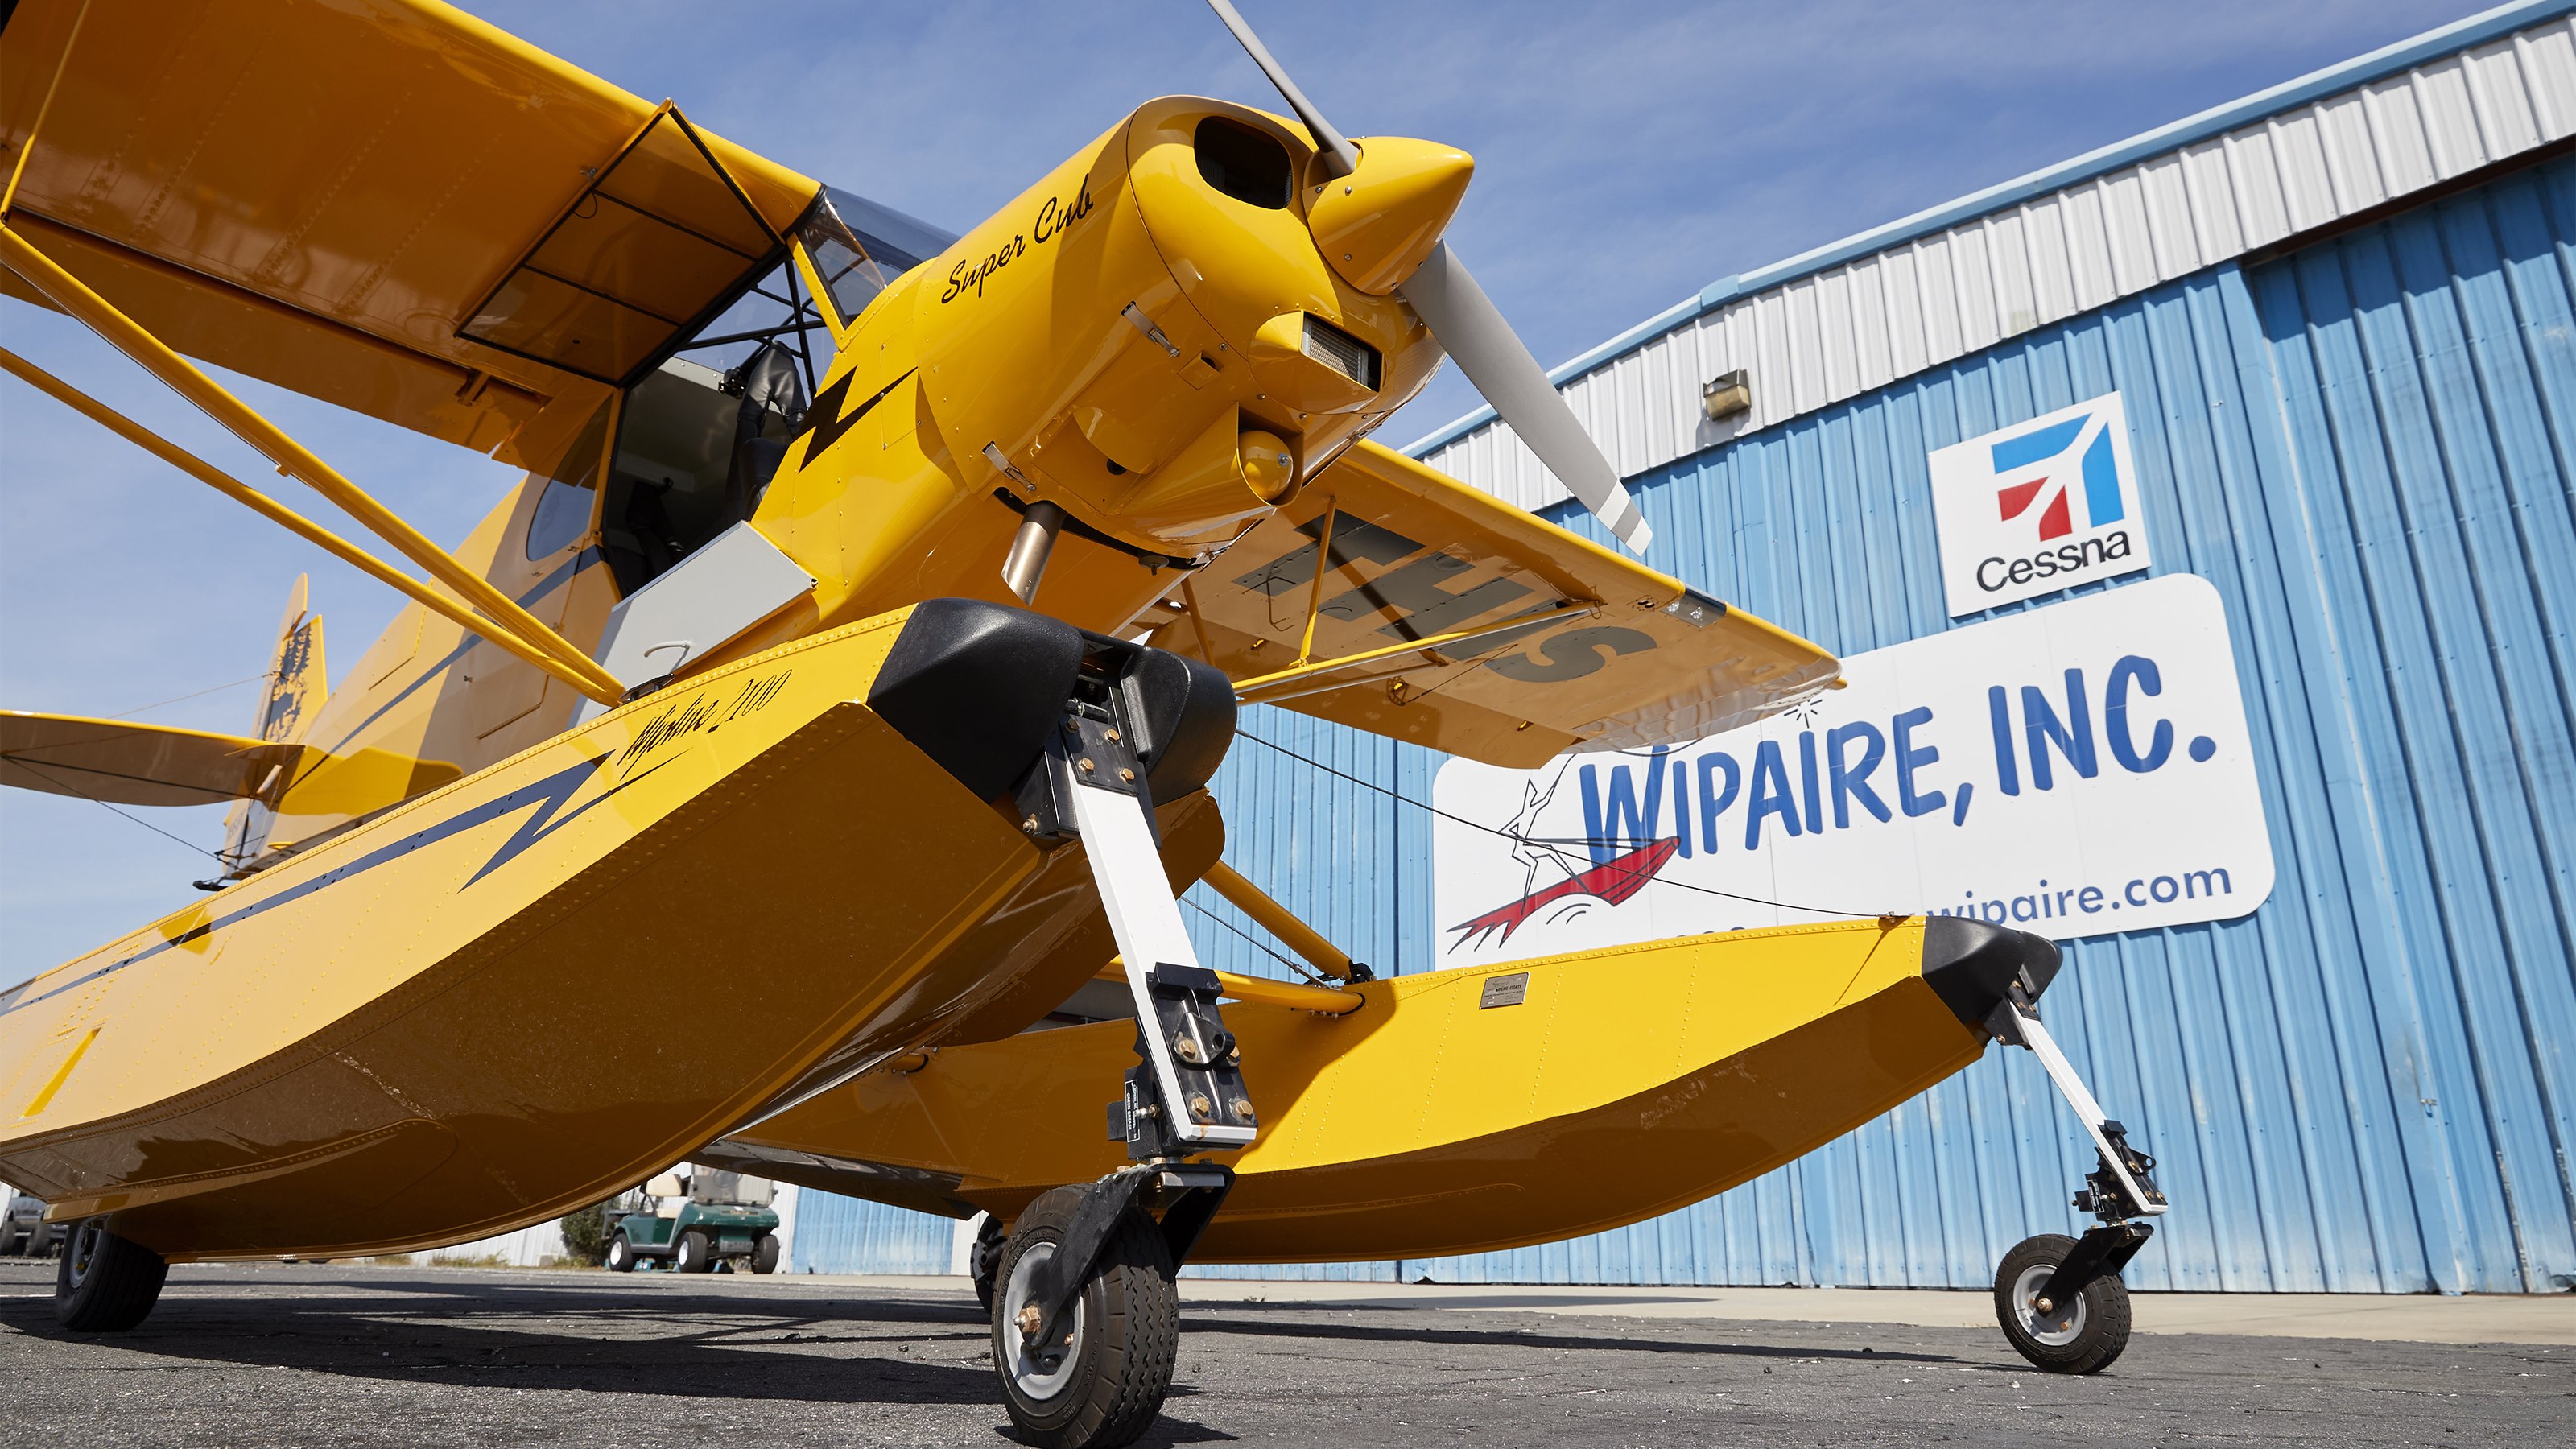 Fresh out of the shop with its sea legs, the Sweepstakes Super Cub shines in the Florida sunlight on Wipaire's ramp at Leesburg International Airport.